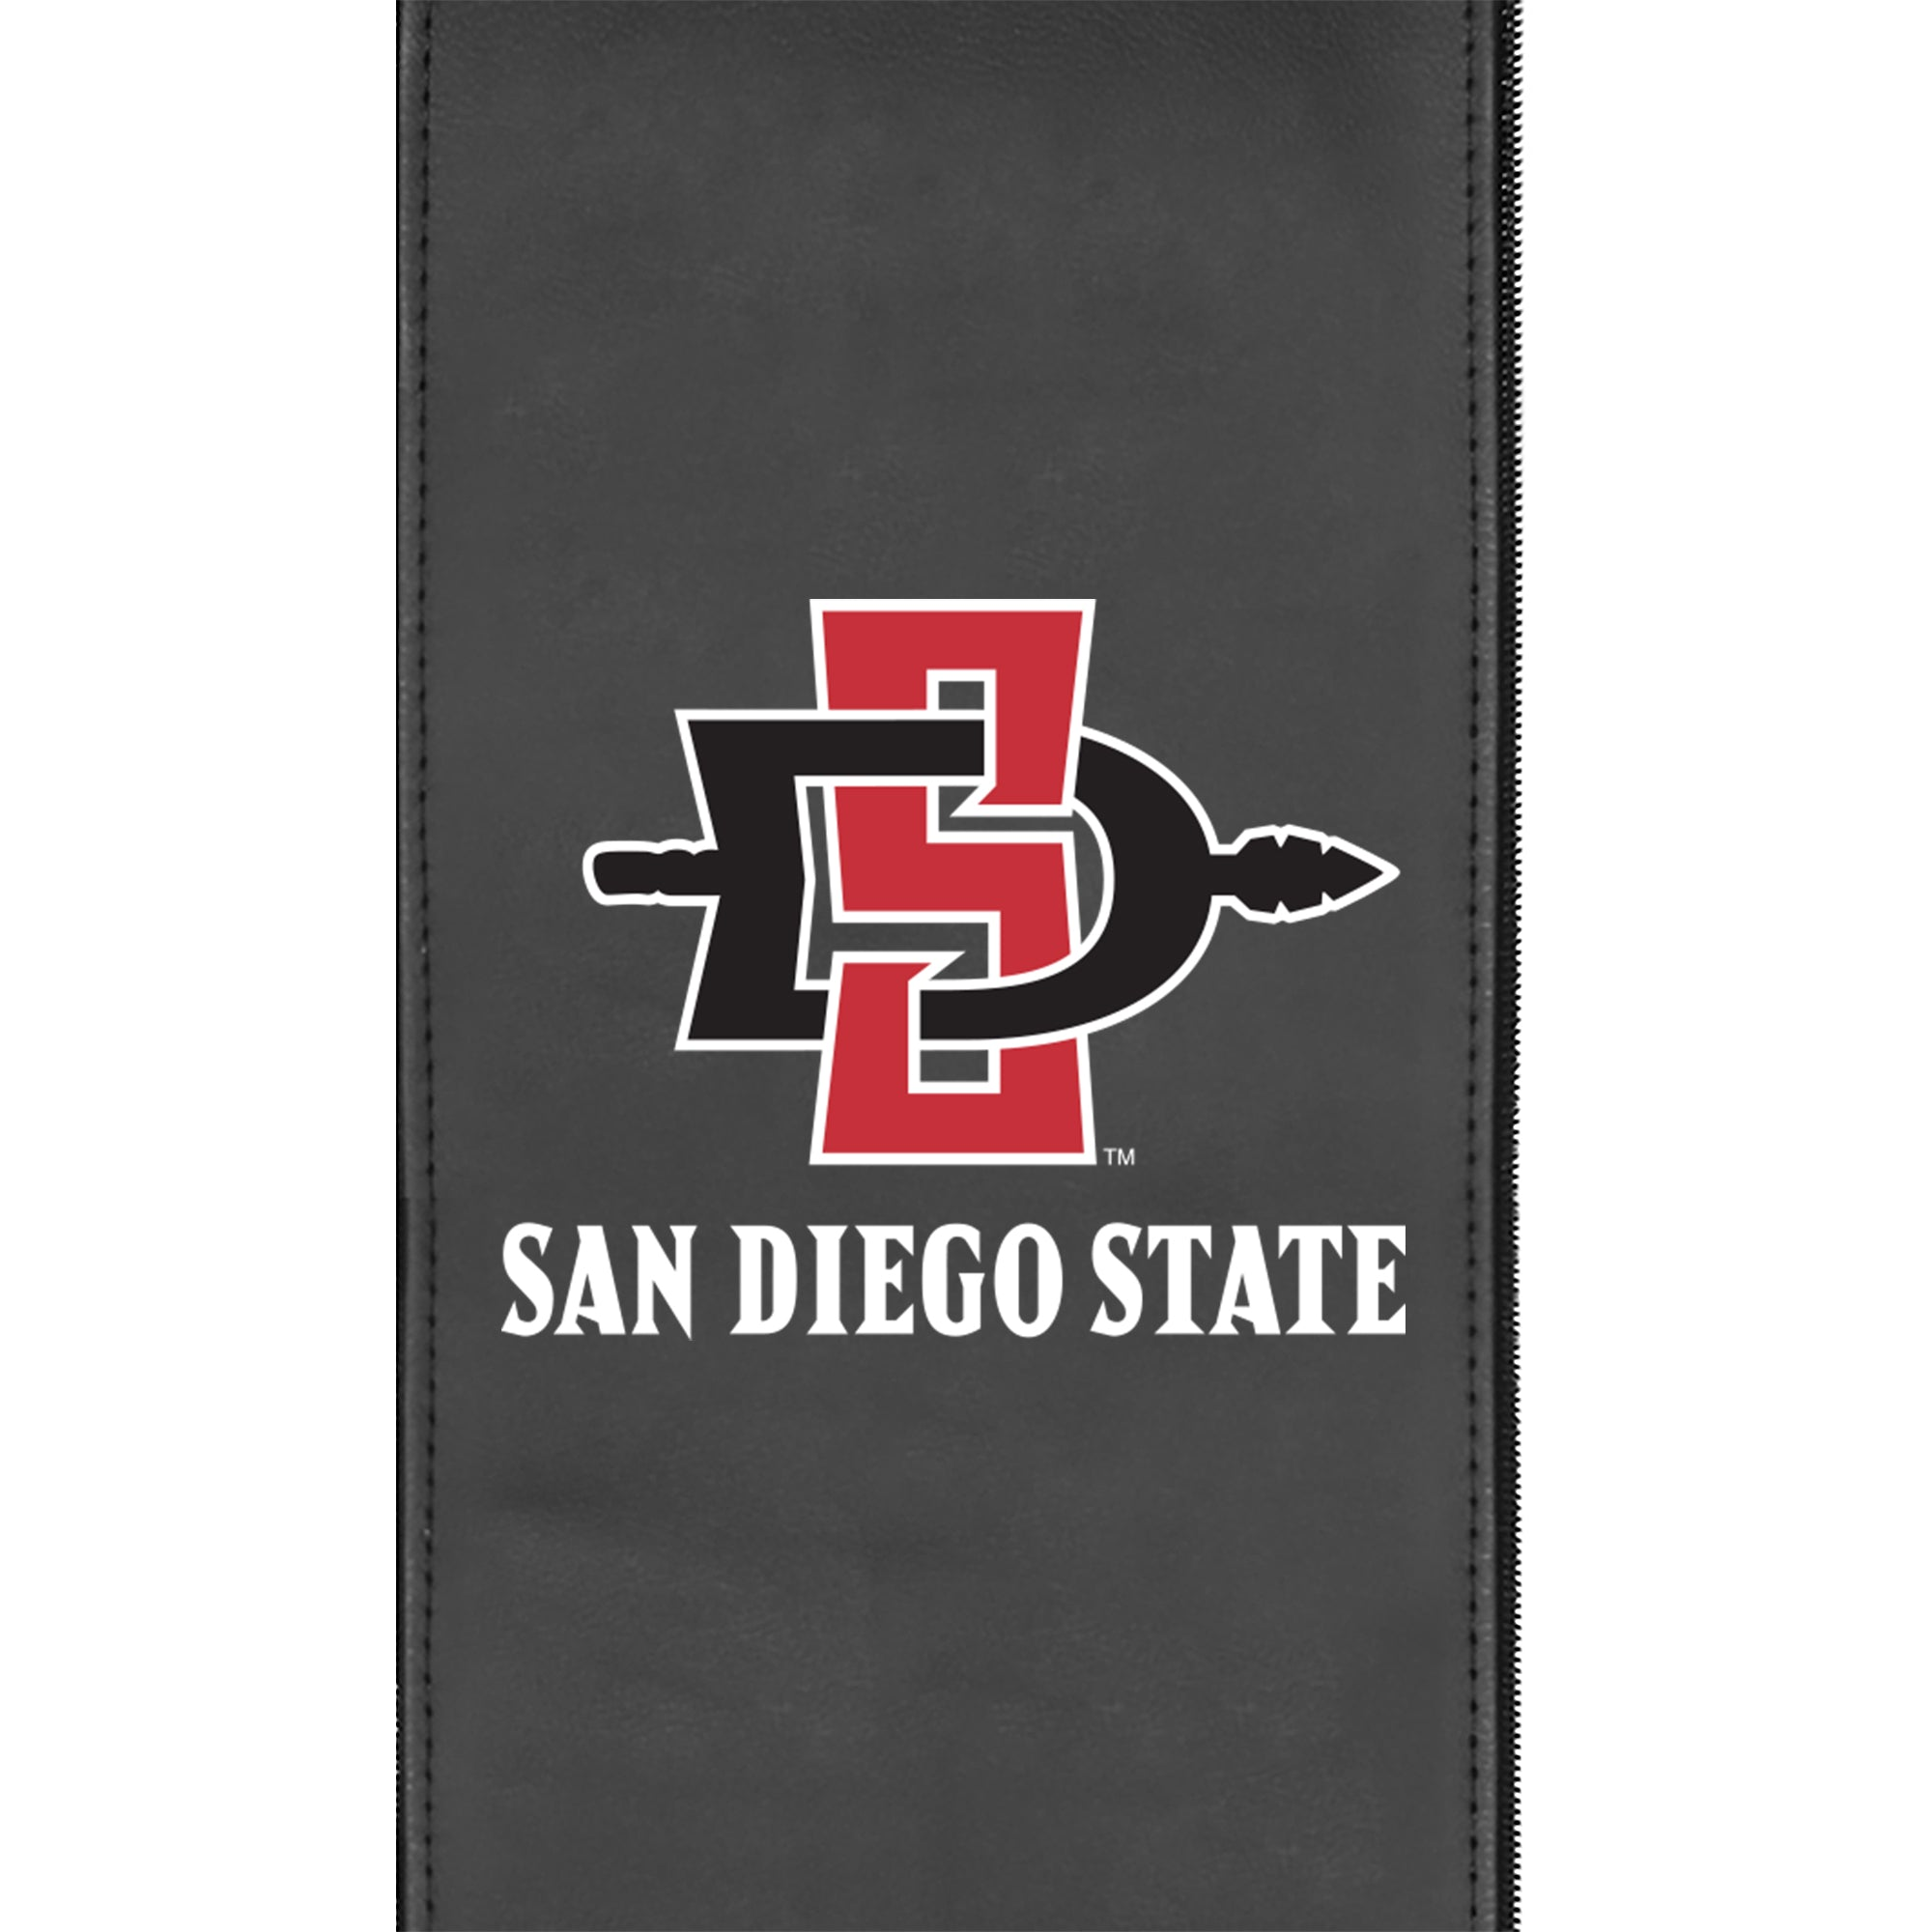 Logo Panel with San Diego State Primary